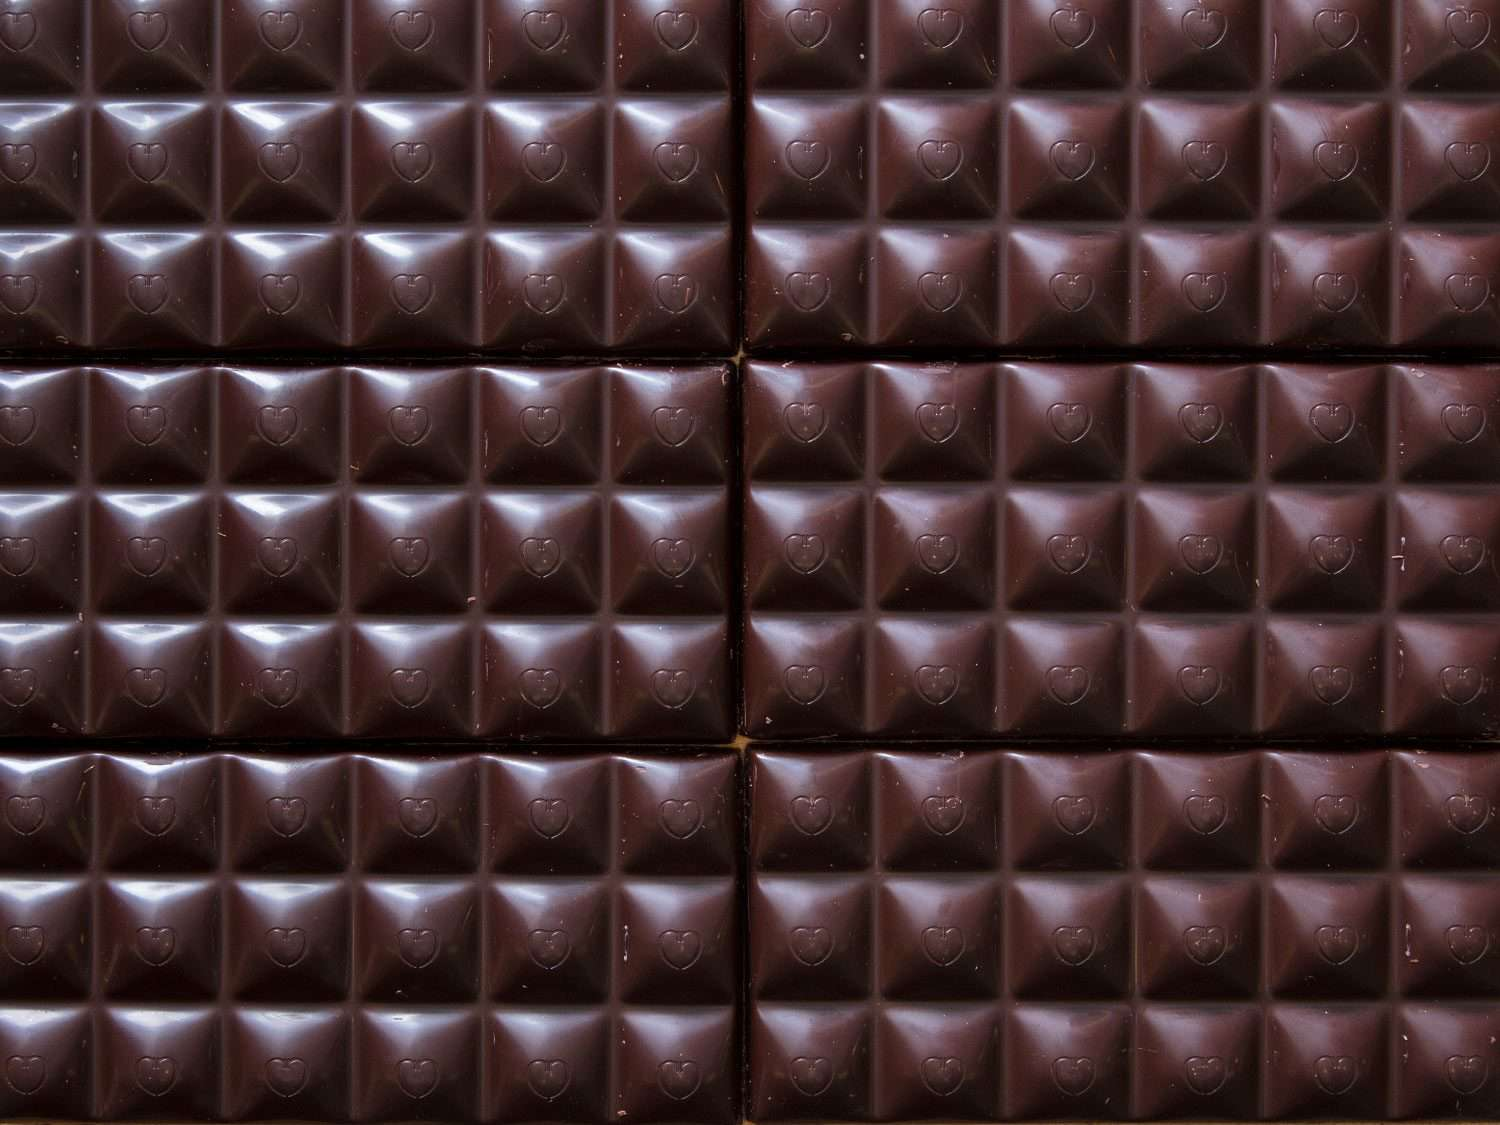 detail of the grid-like pattern of chocolate bars